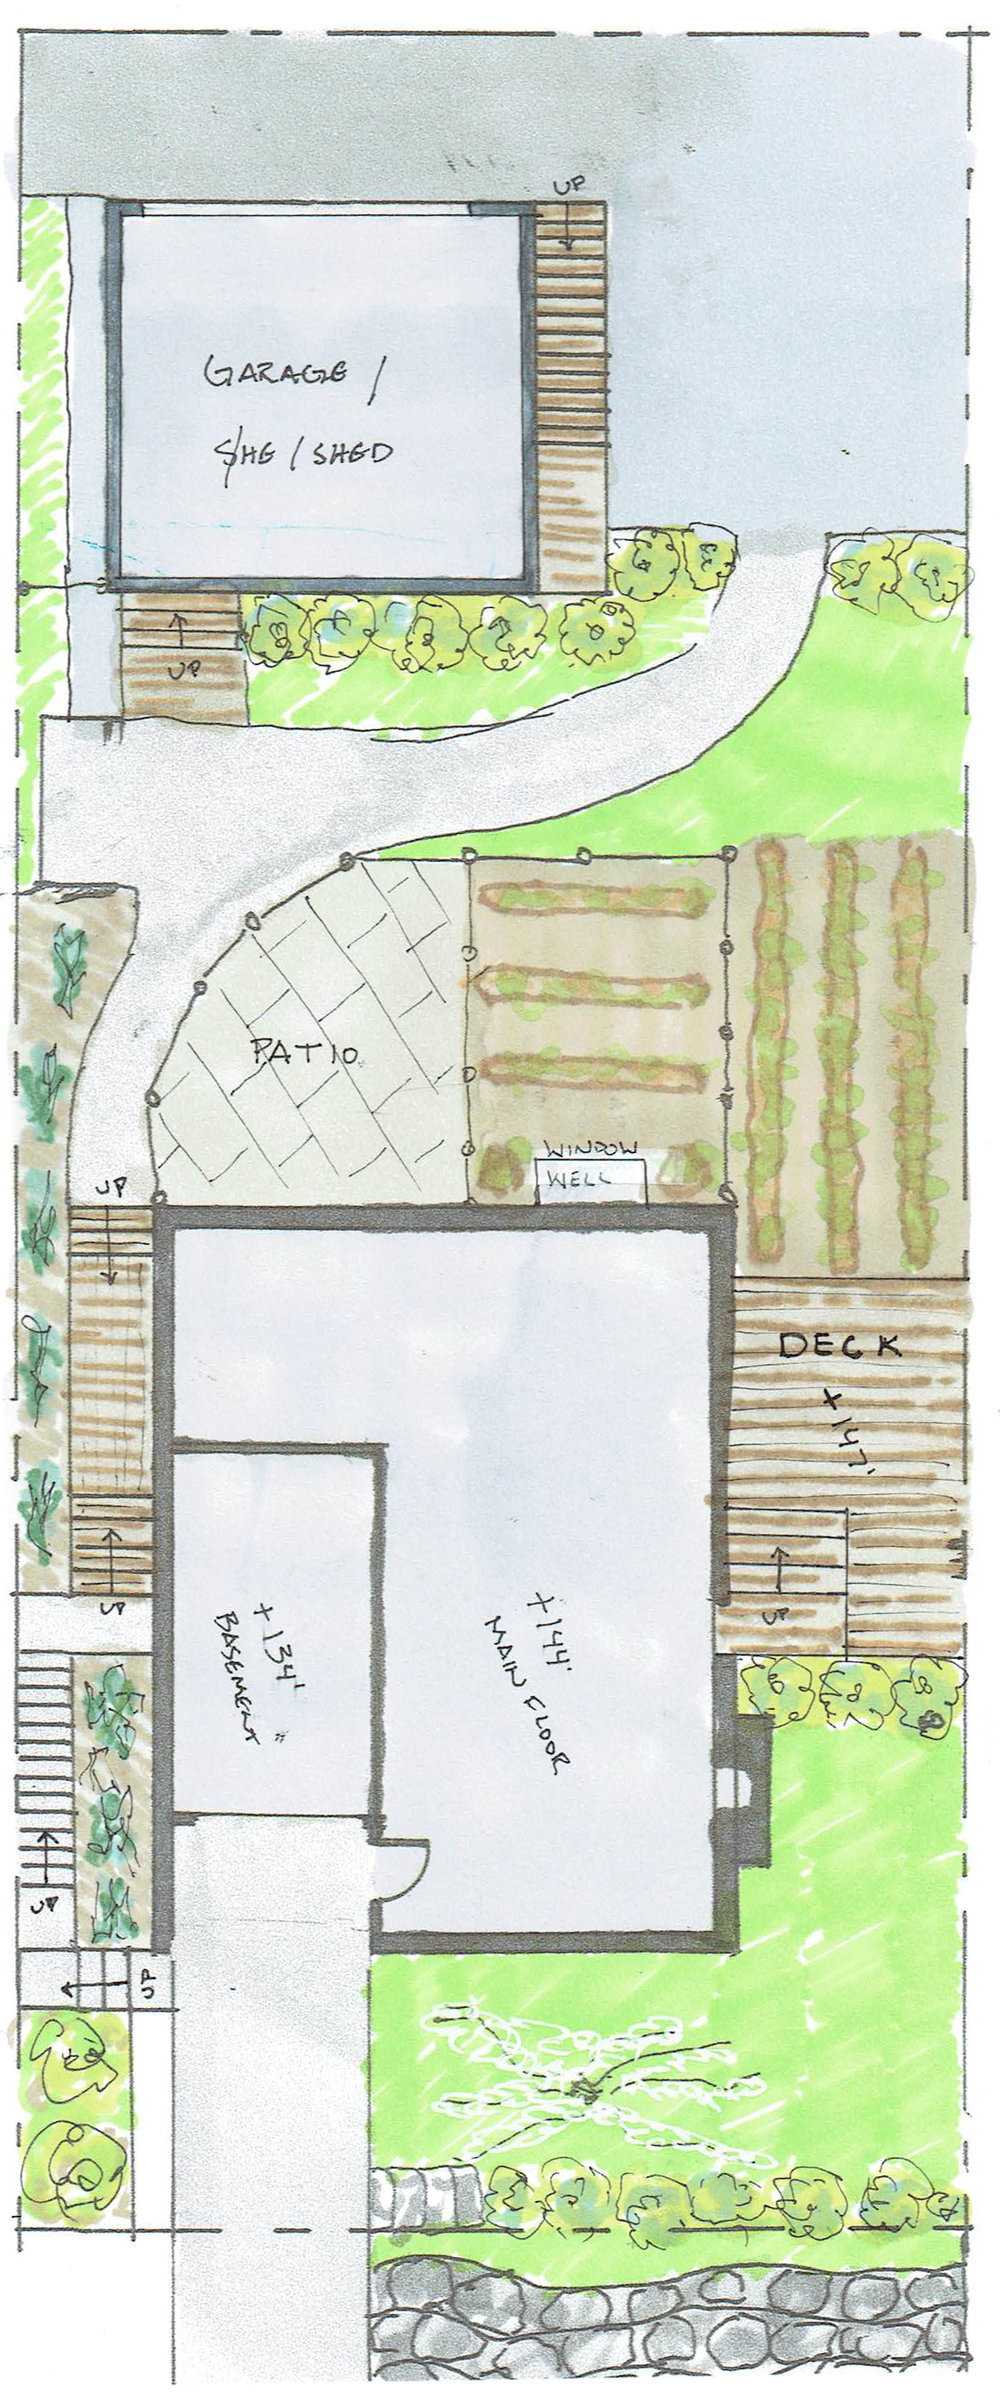 Site Plan Features F Haus And S Haus (above The Garage)